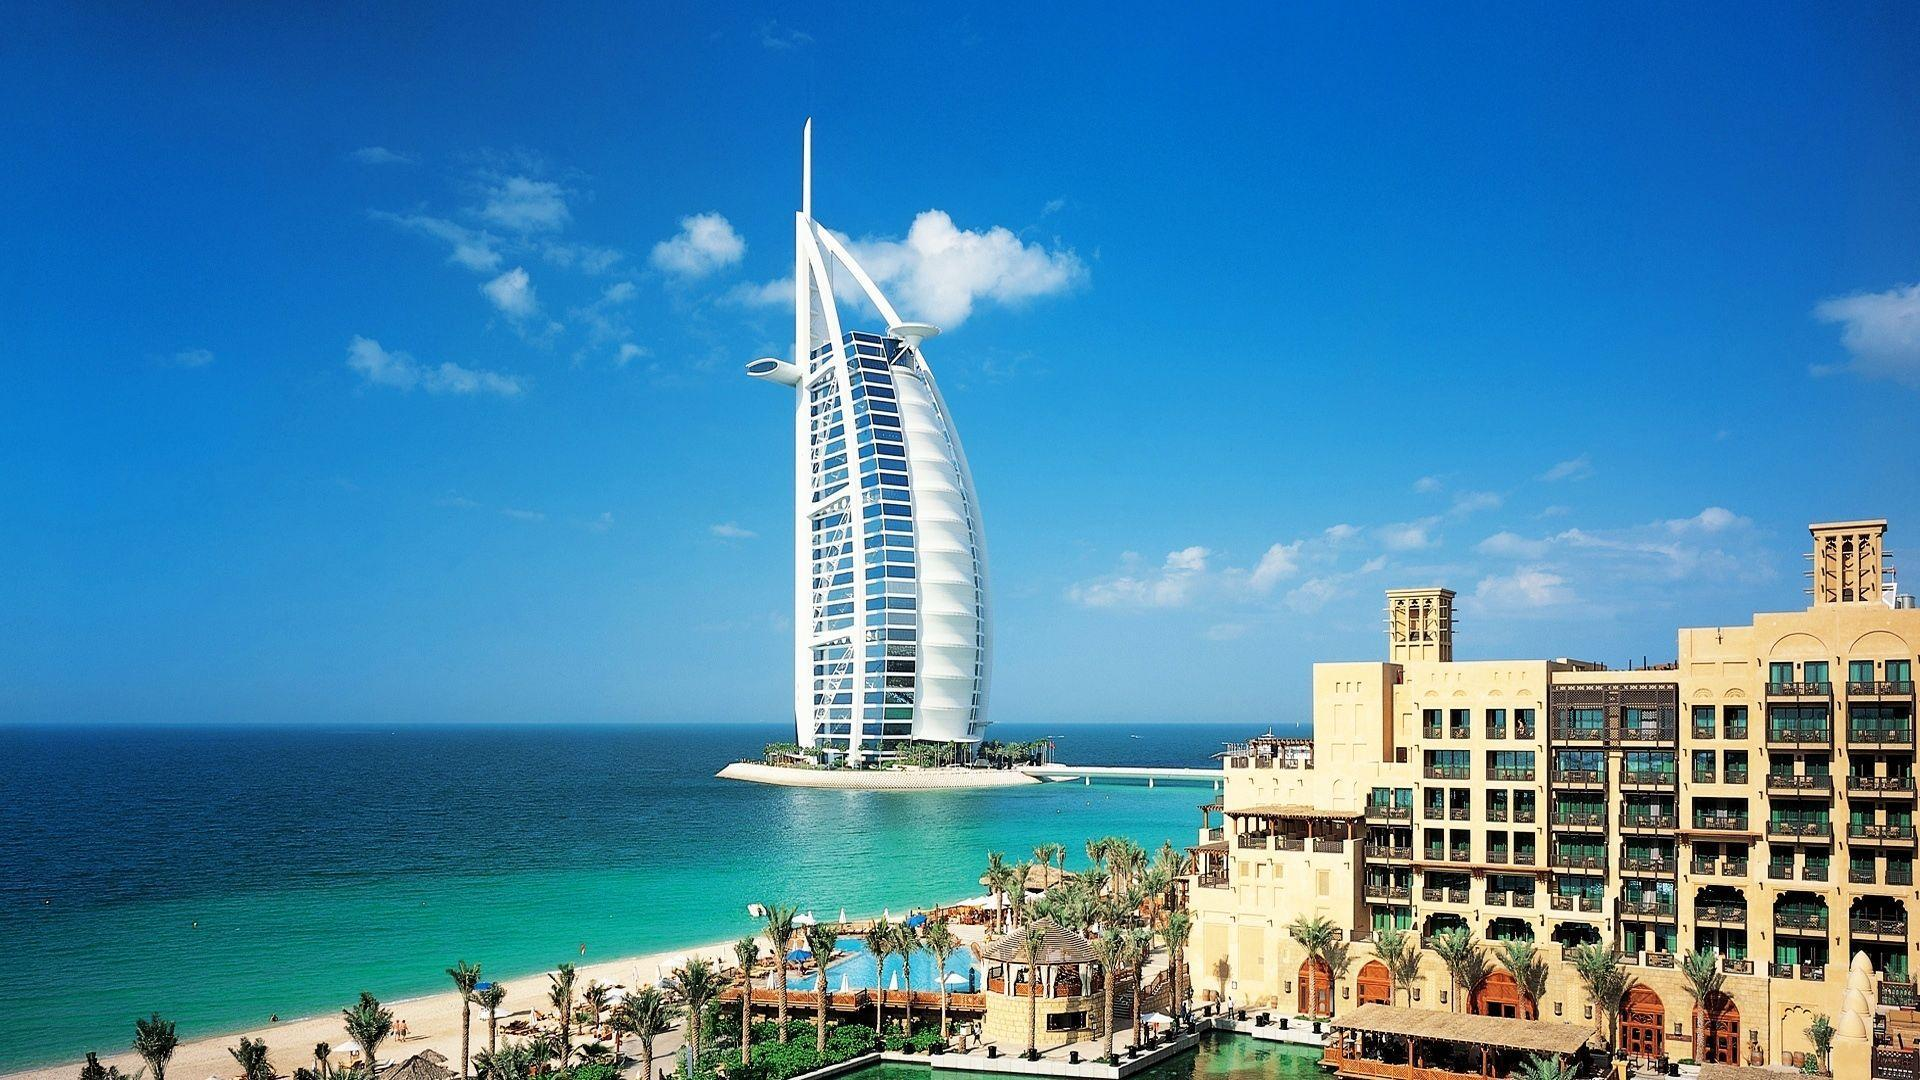 dubai wallpapers - wallpaper cave